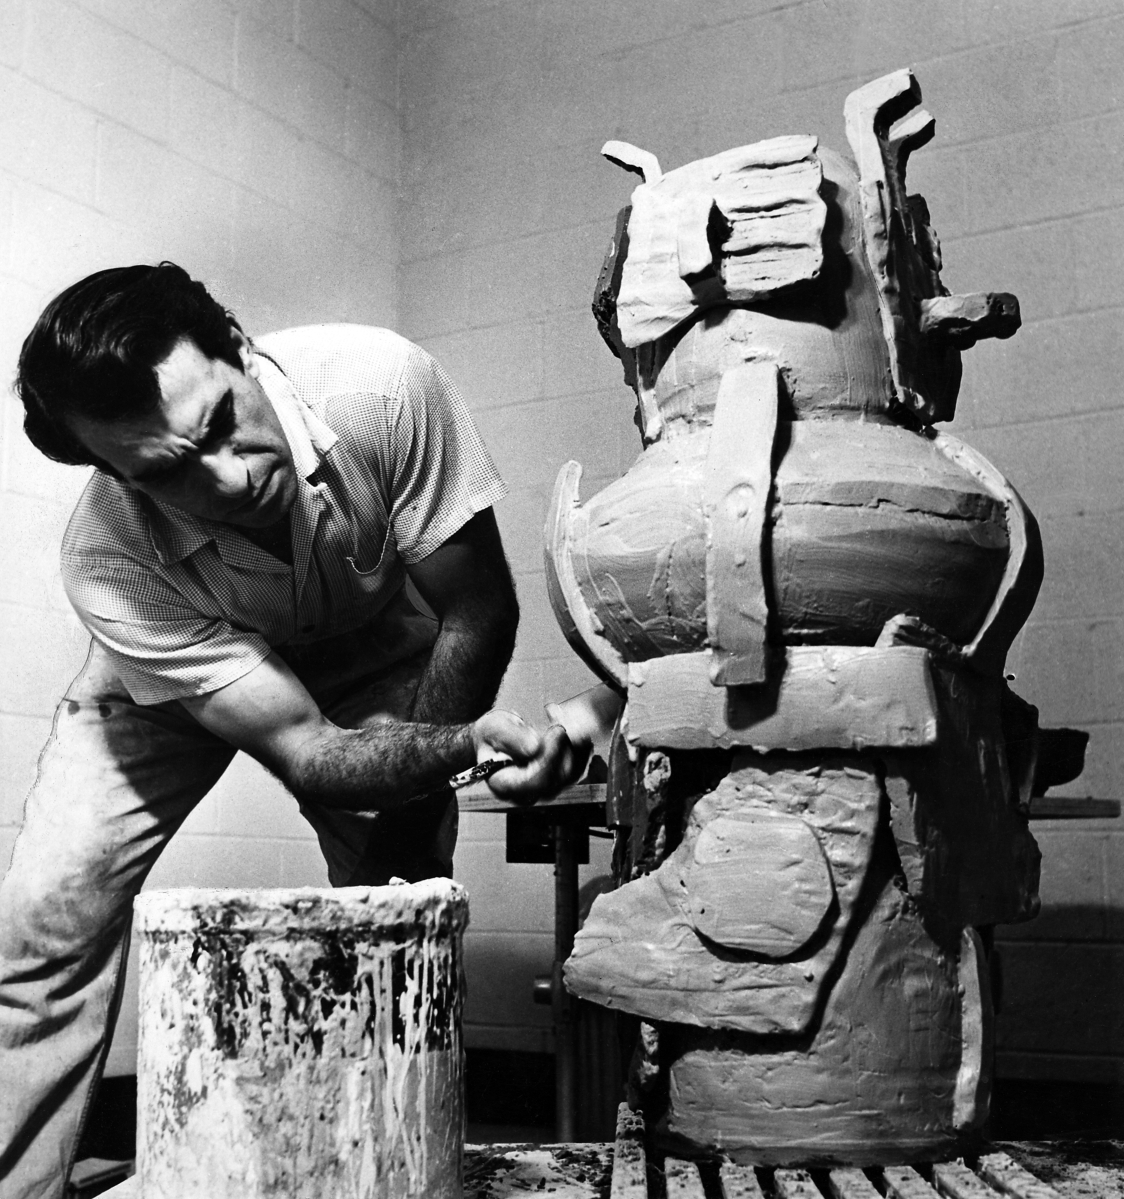 Peter Voulkos working on an untitled piece in Glendale studio, 1956. —Oppi Untracht photo, courtesy of the Voulkos & Co. Catalogue Project.